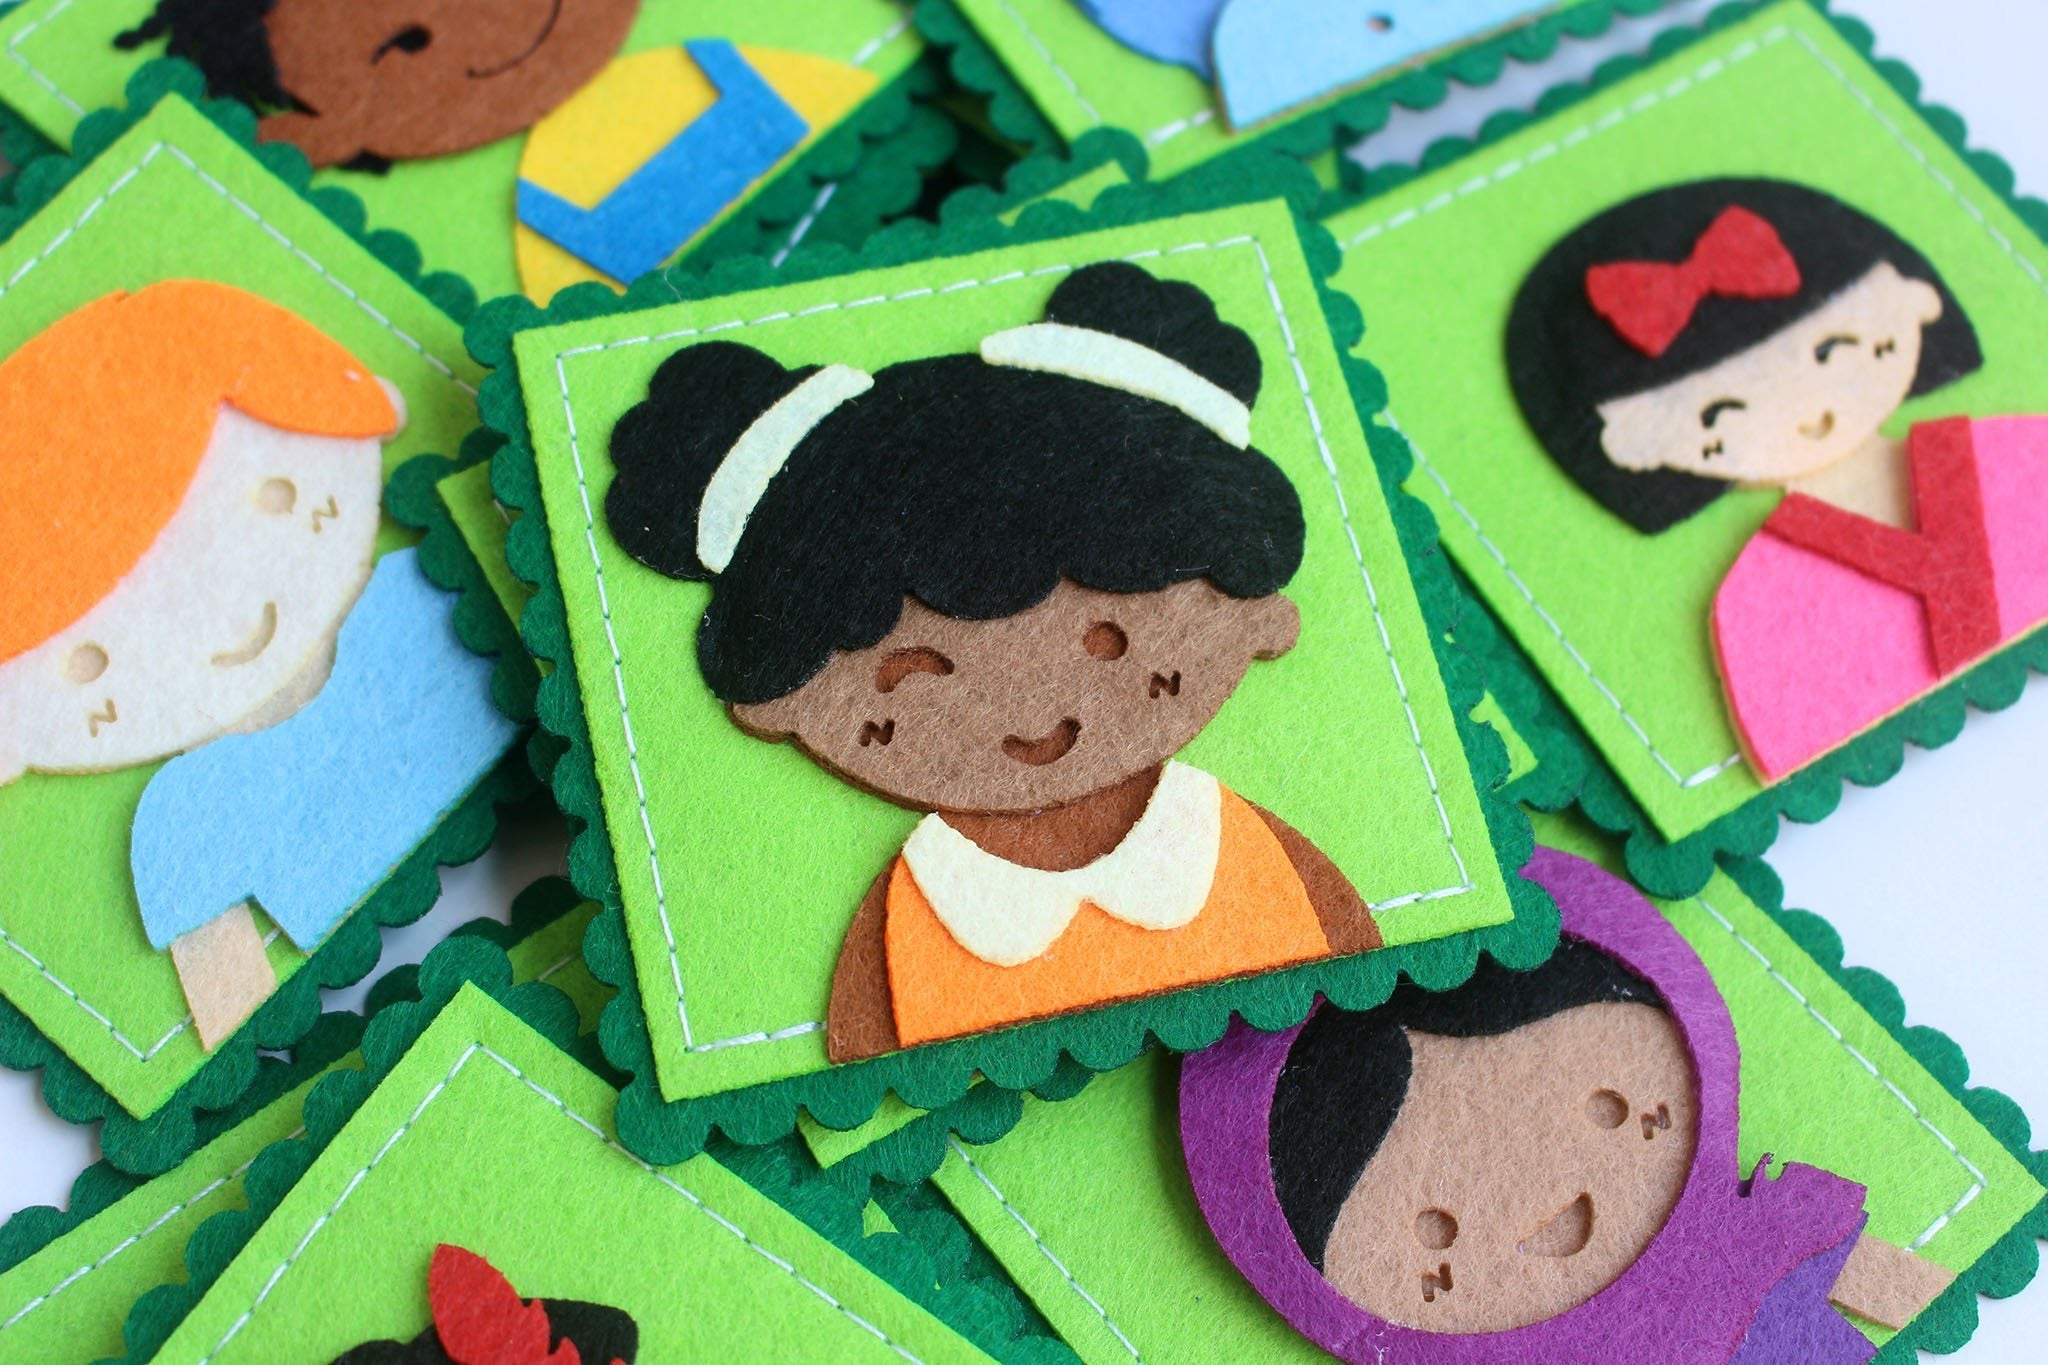 My Lovely Friends - A Game to Teach Kids about Diversity